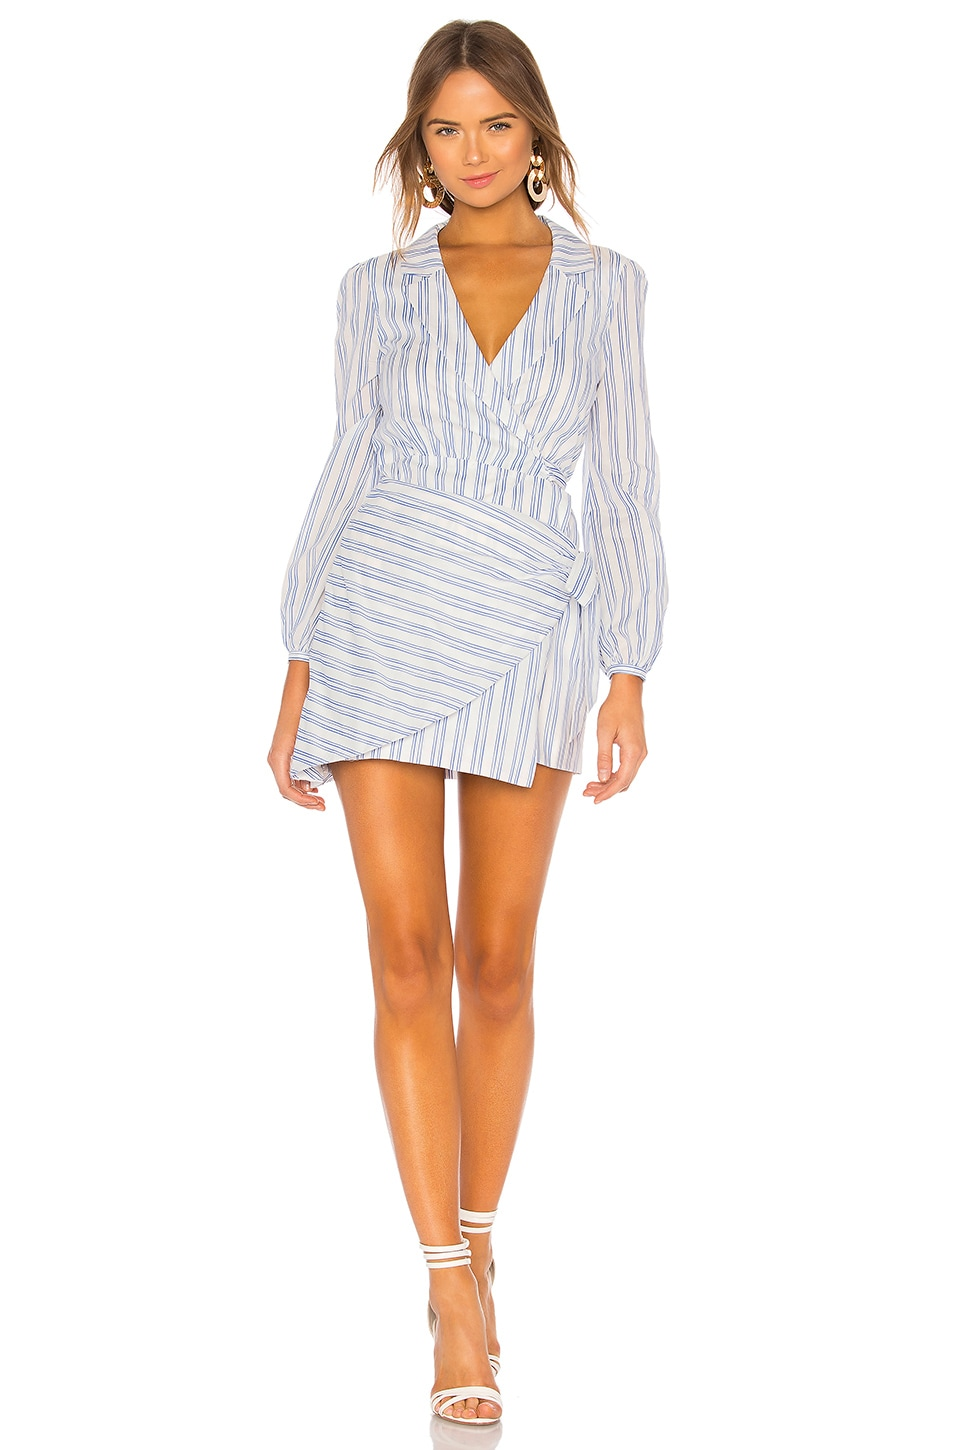 MAJORELLE Miranda Mini Dress in Blue Picnic